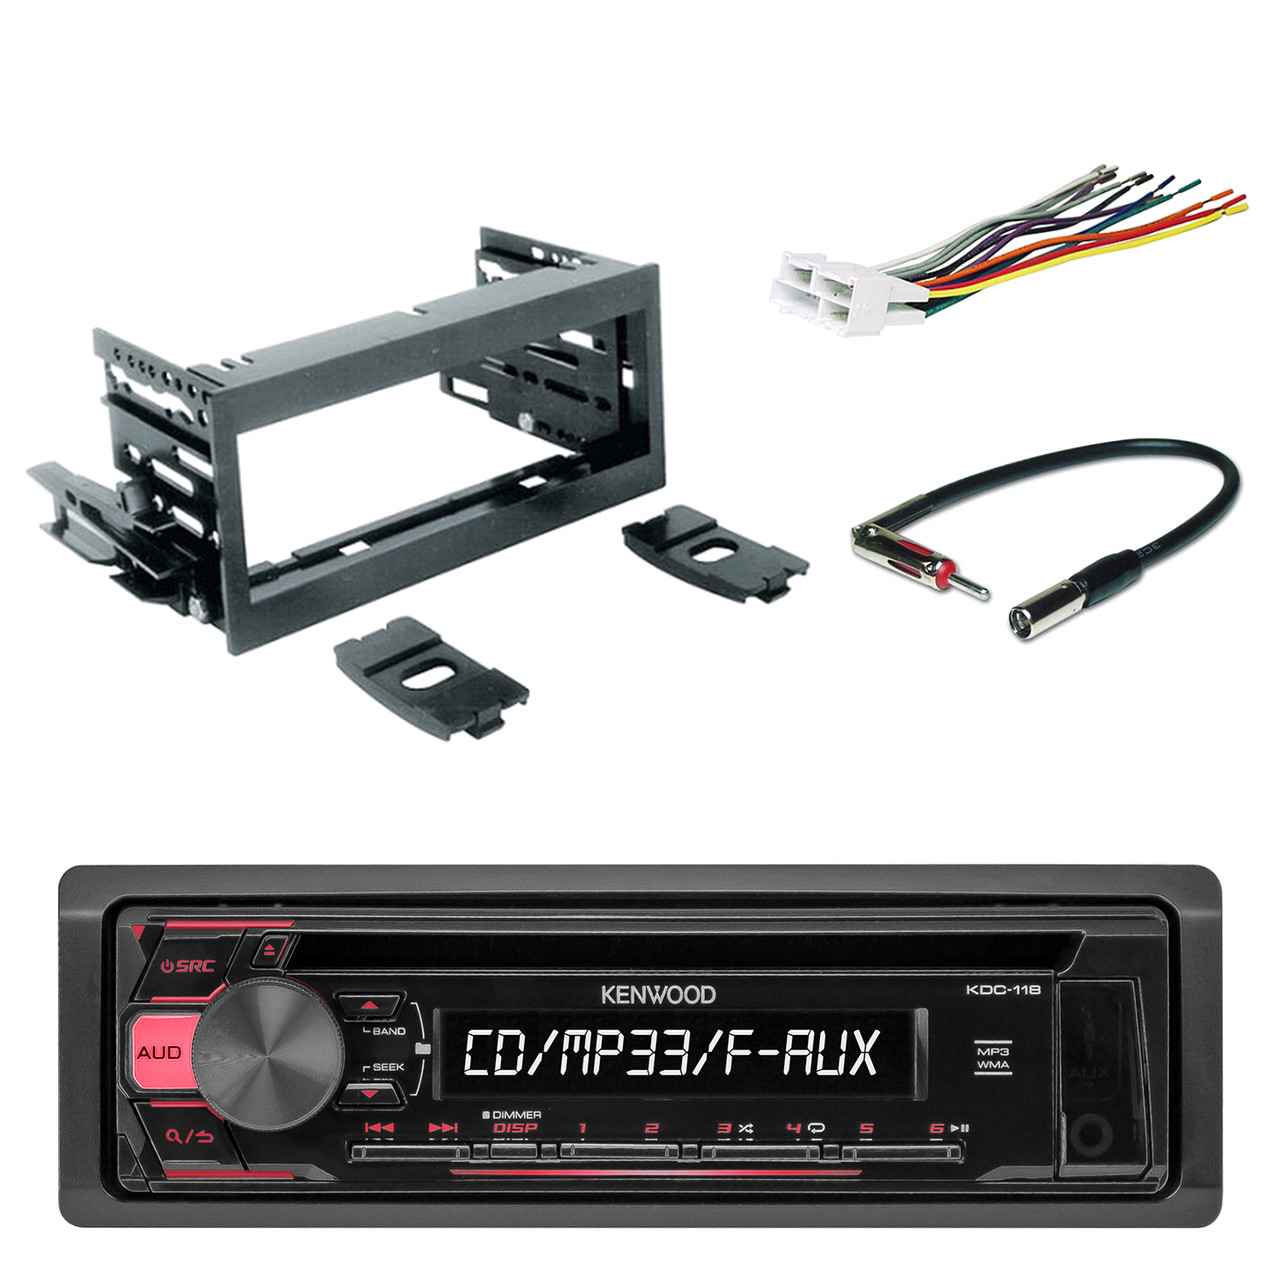 hight resolution of kenwood in dash single din cd player aux car stereo receiver with scosche dash kit scosche gm micro delco antenna adapter and scosche radio wiring harness